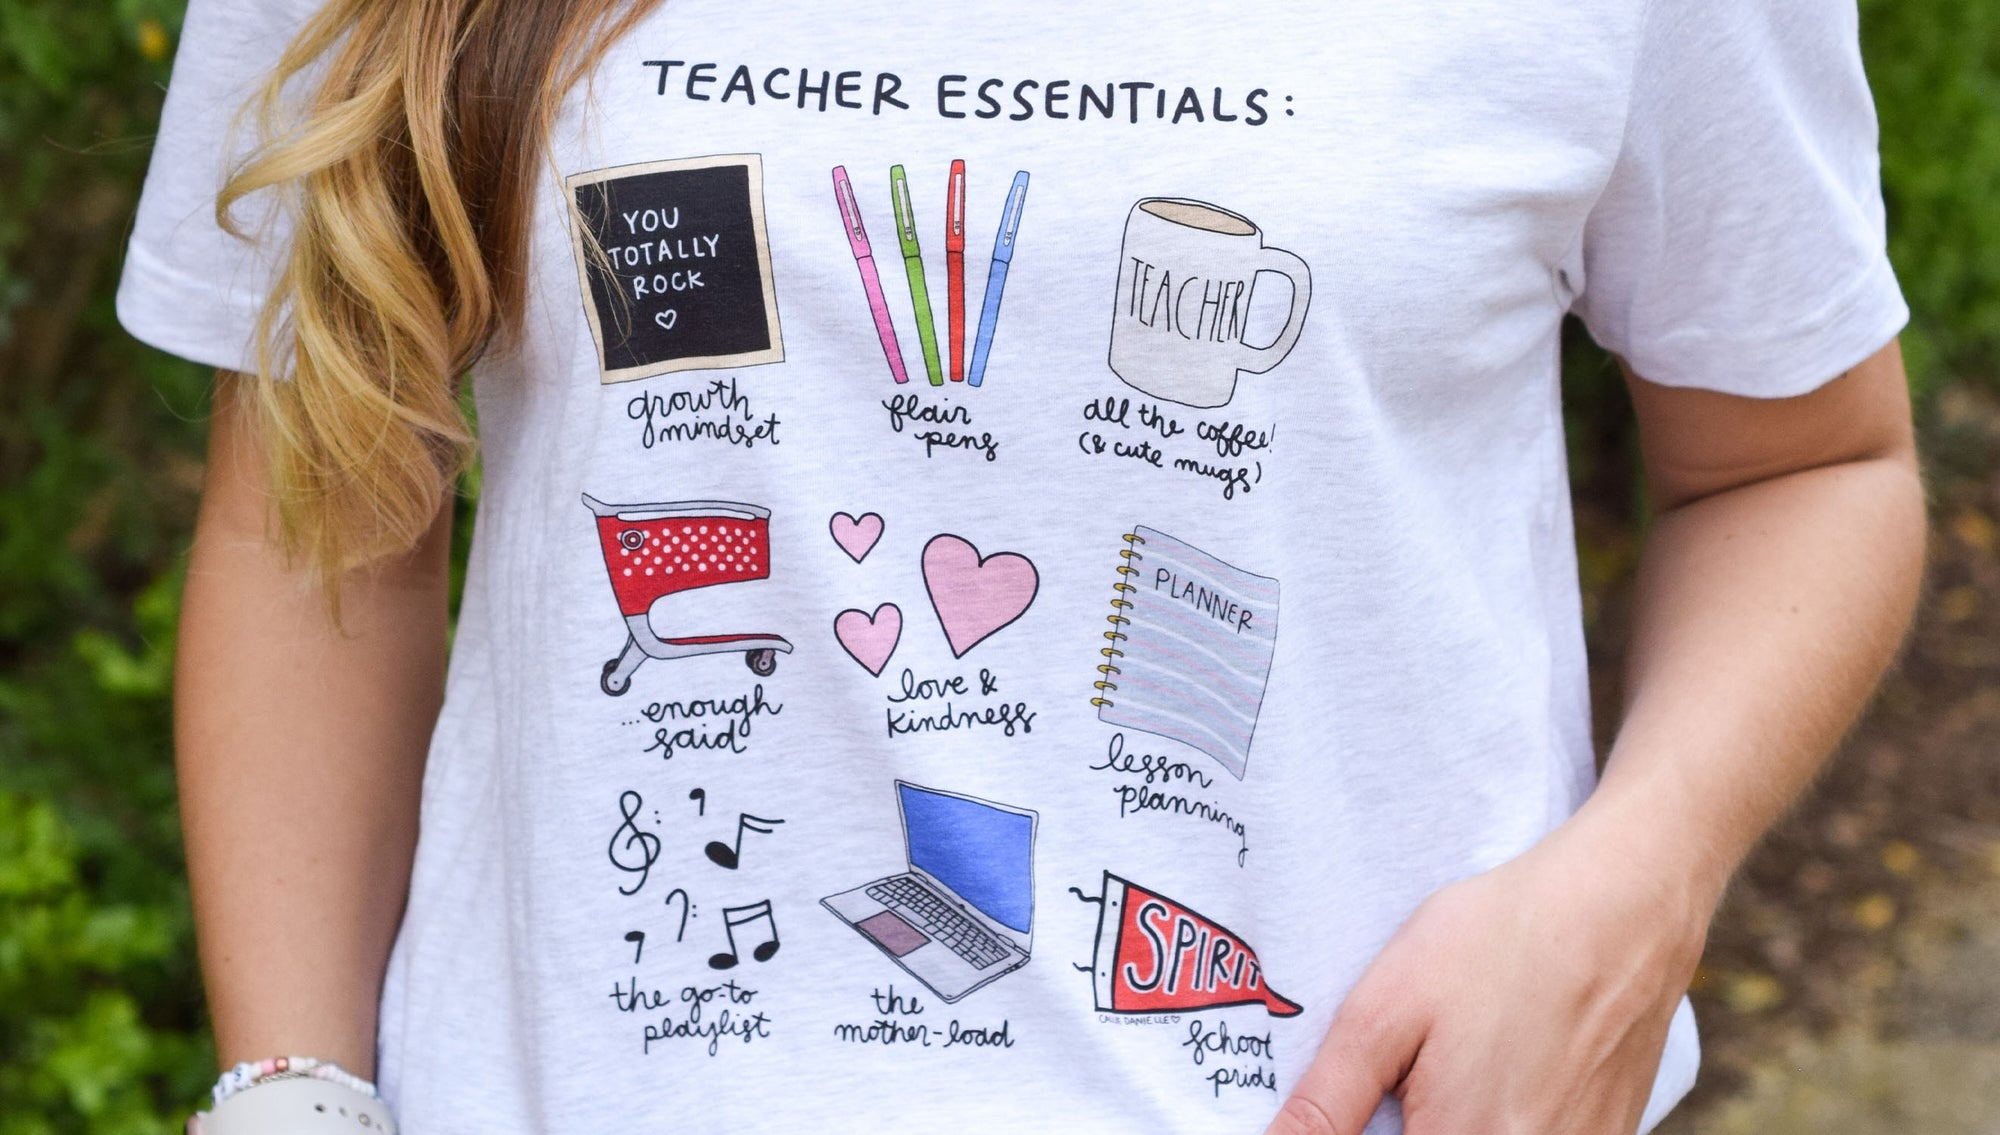 Teacher Essentials T-shirt